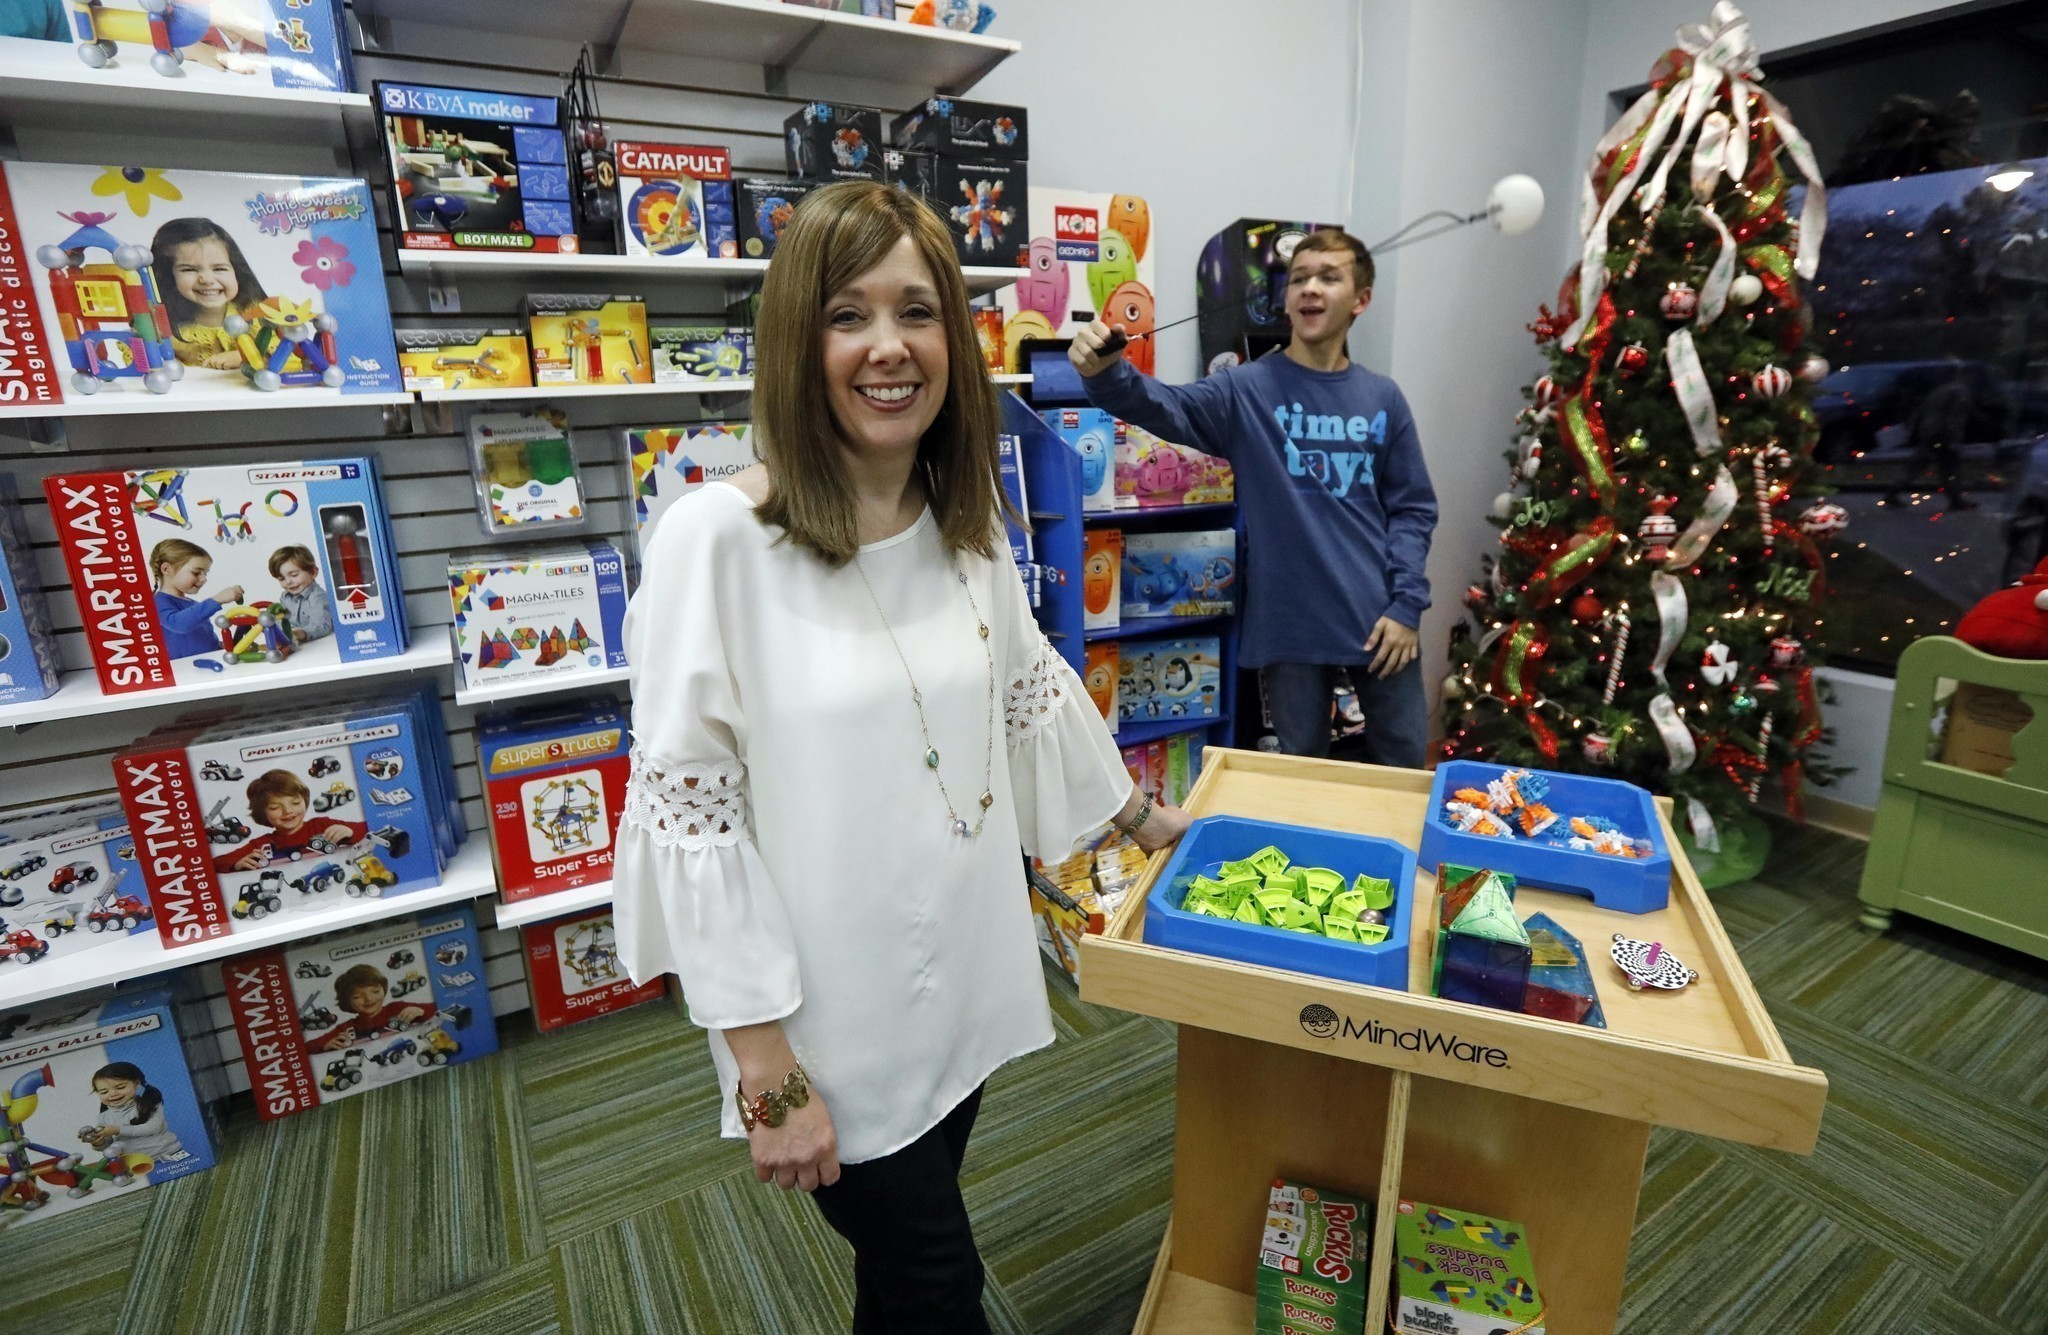 Autism Toy Store : Toy sellers and makers offer more options for autistic